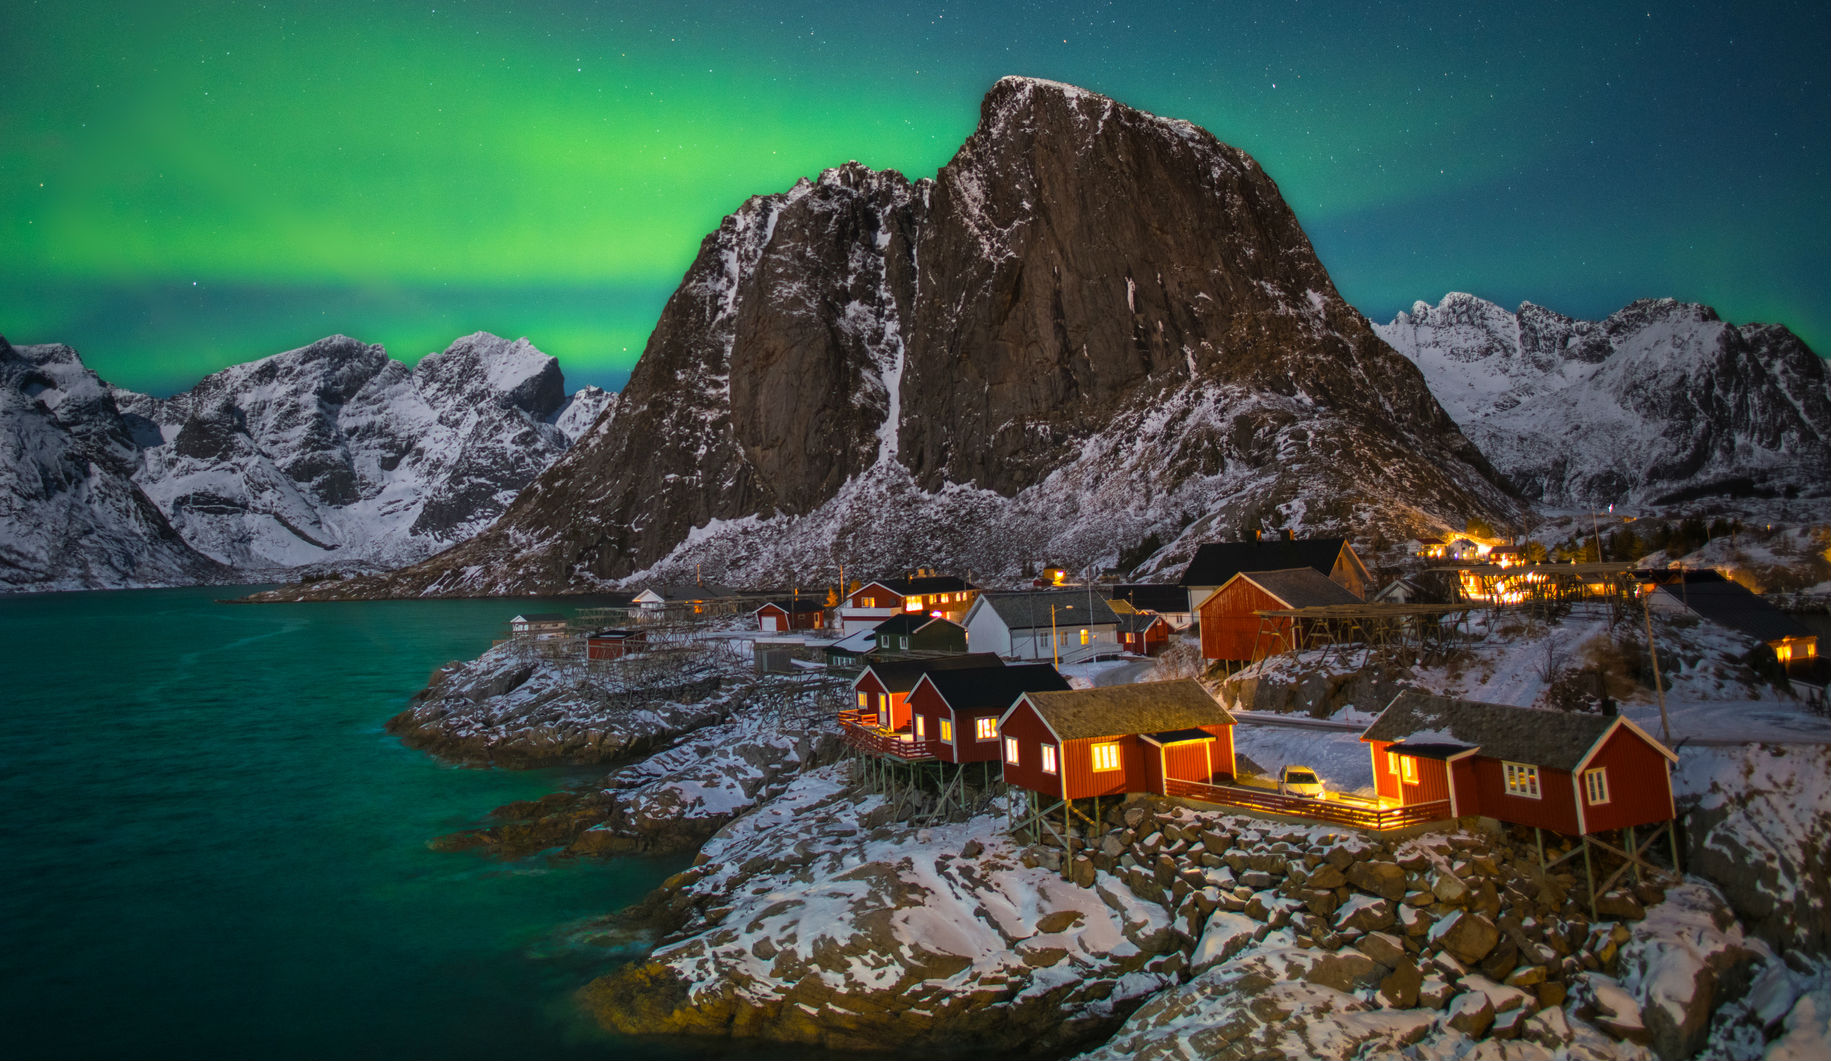 Norway:These Locations Have Some of the Most Spectacular Scenery on Earth